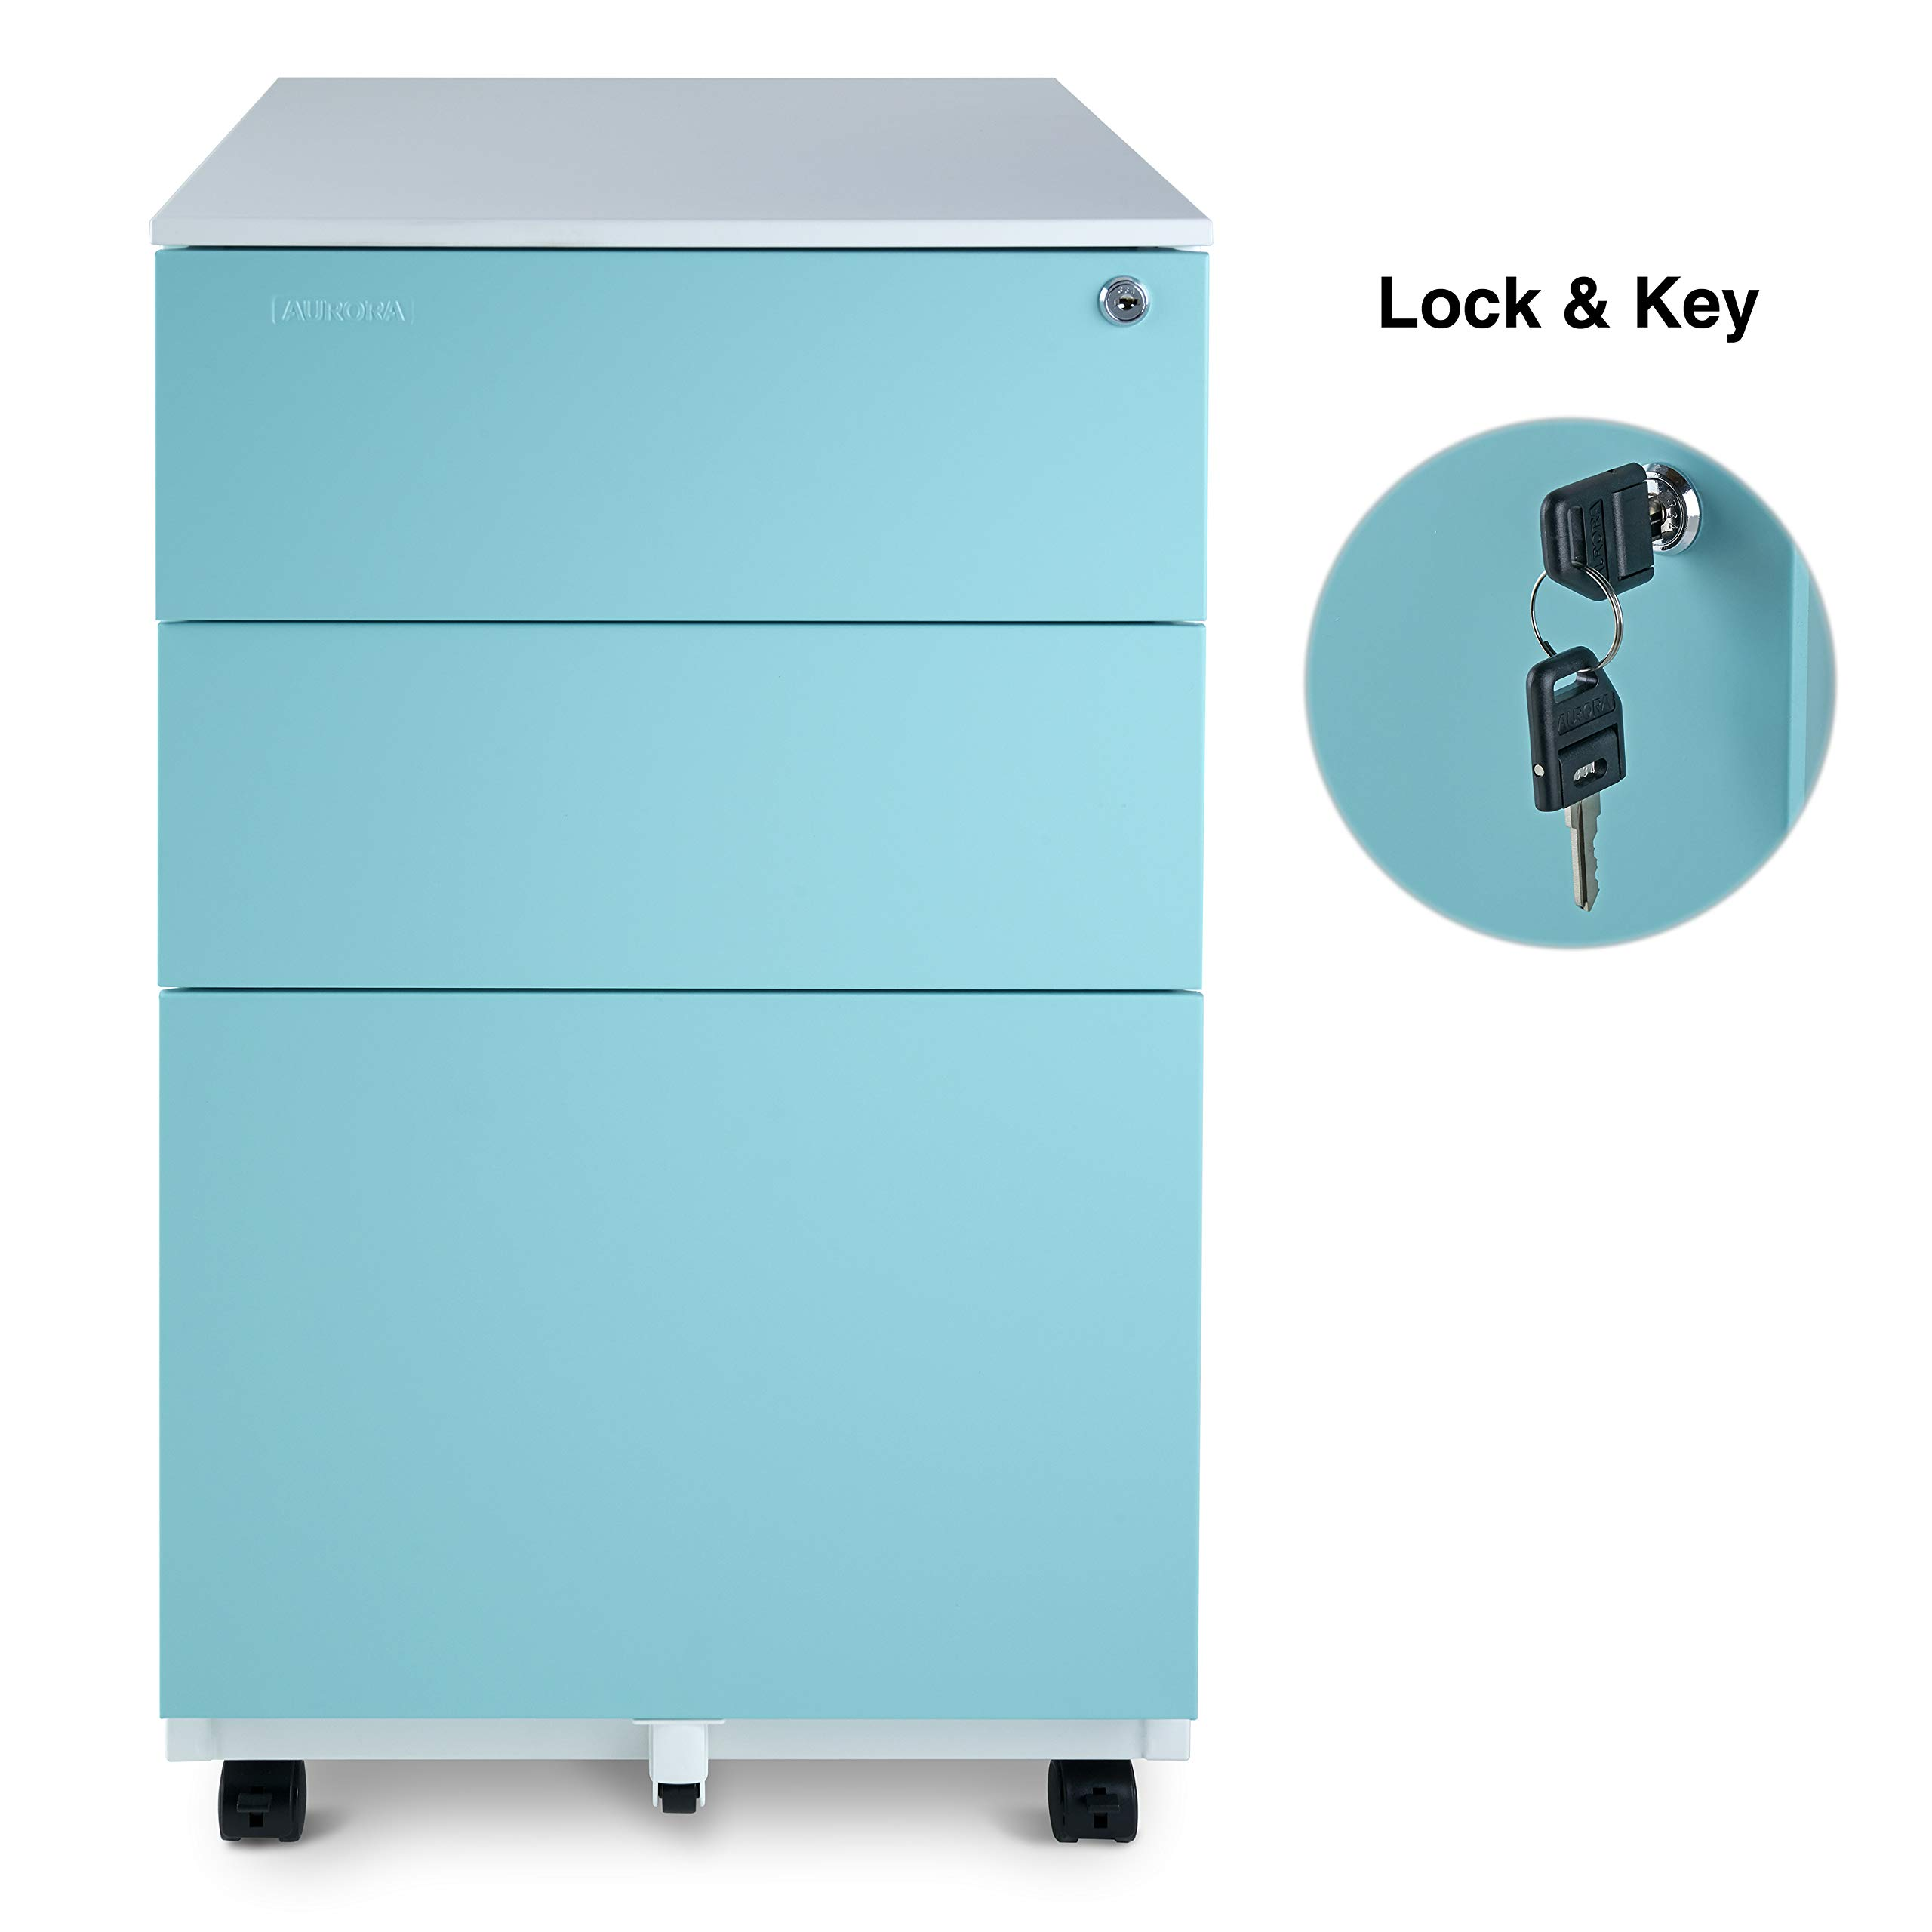 Aurora Mobile File Cabinet 3-Drawer Metal with Lock Key Sliding Drawer, White/Aqua Blue, Fully Assembled, Ready to Use by AURORA